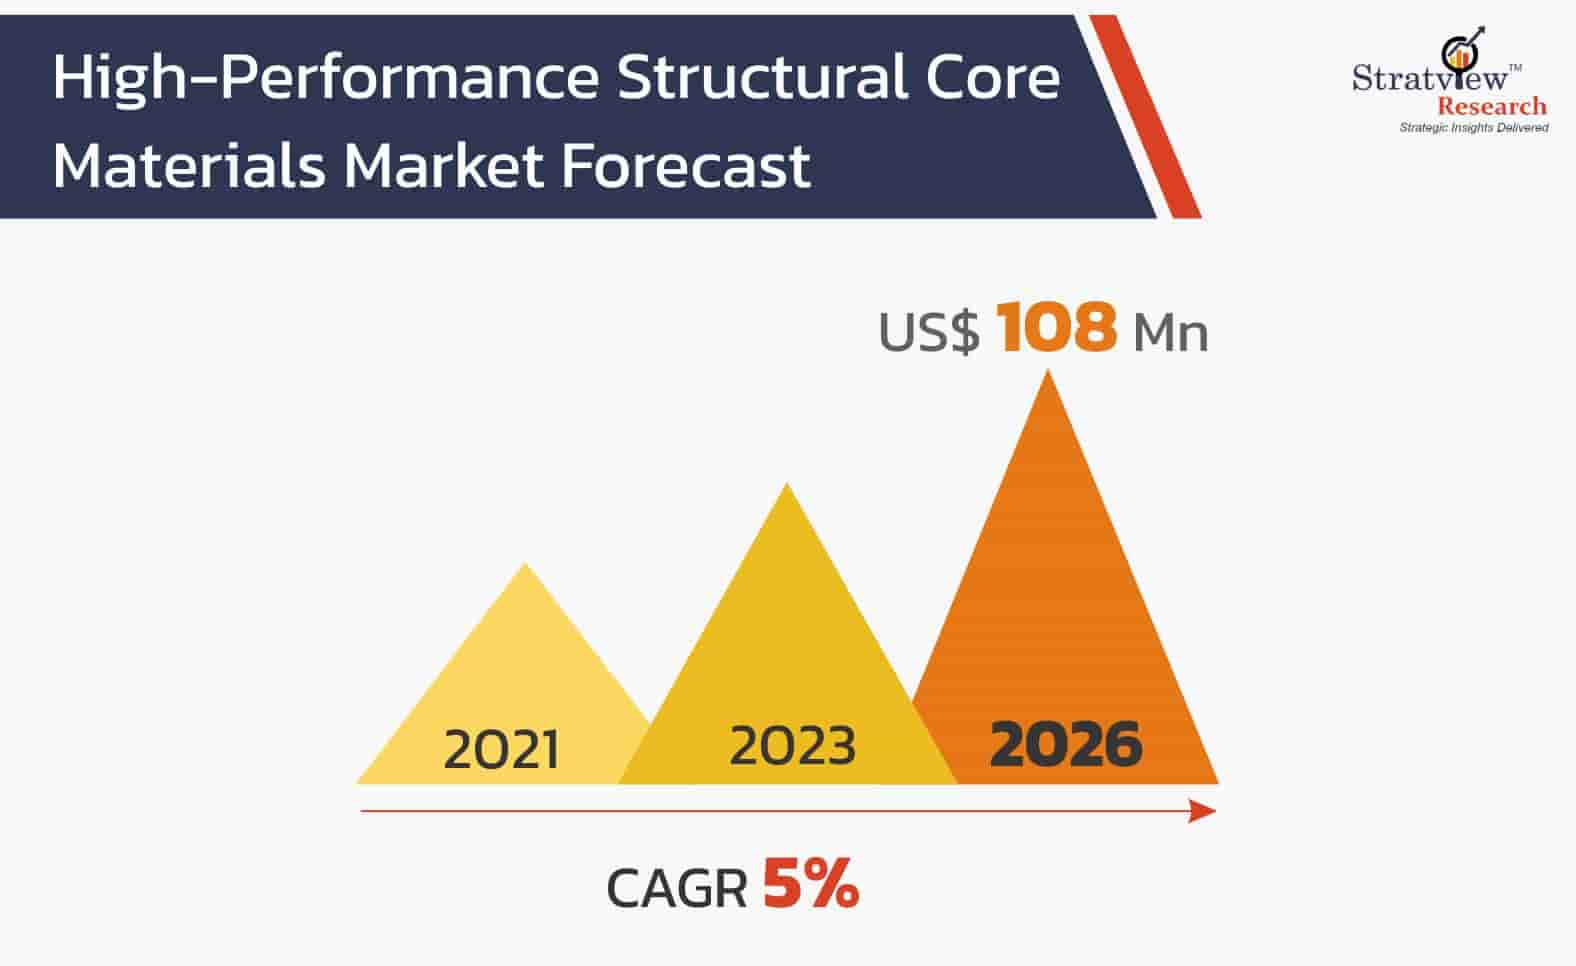 High-Performance-Structural-Core-Materials-Market-Forecast